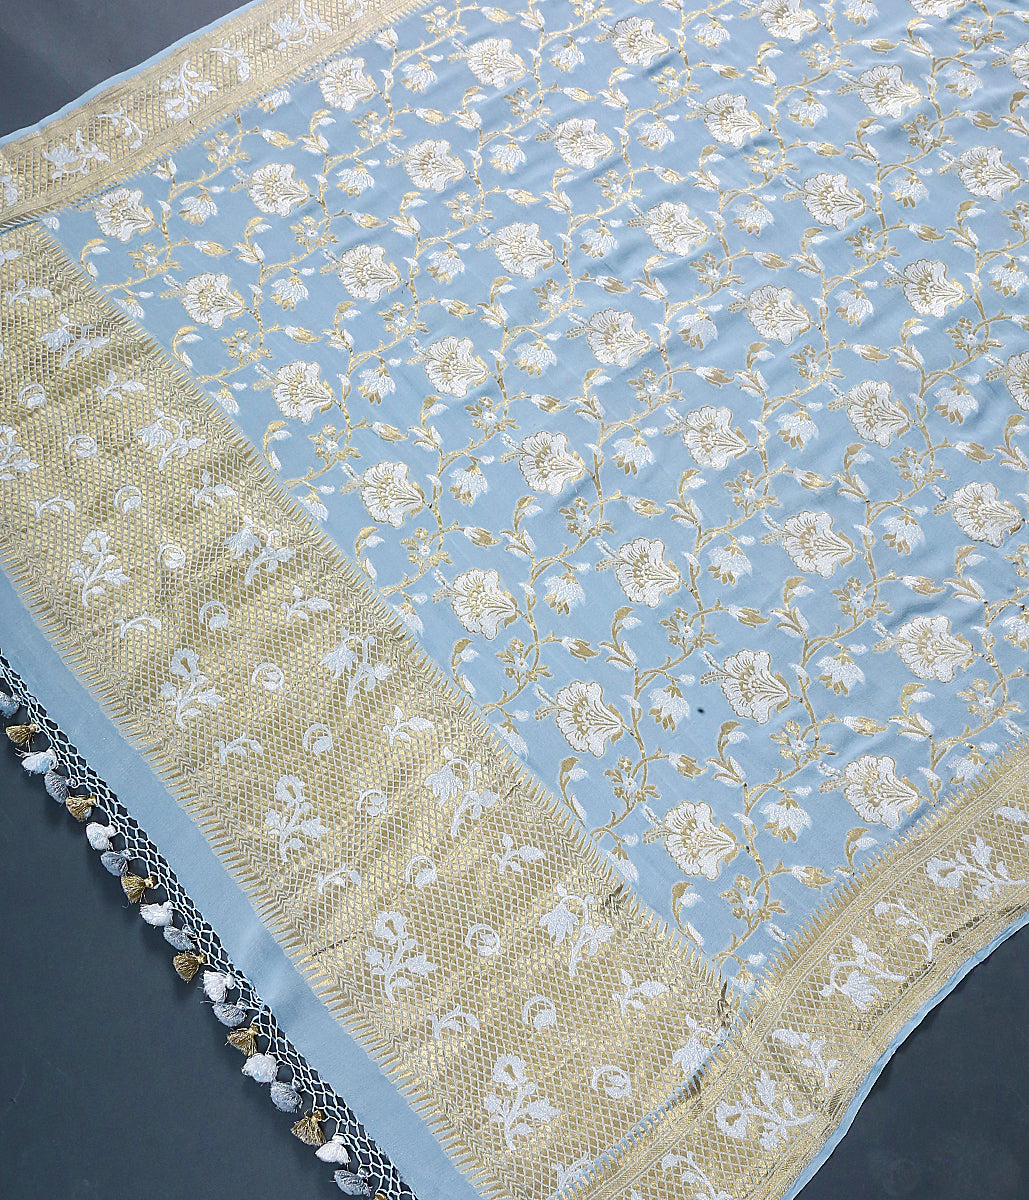 Powder Blue Banarasi georgette dupatta with gold and silver zari floral jaal